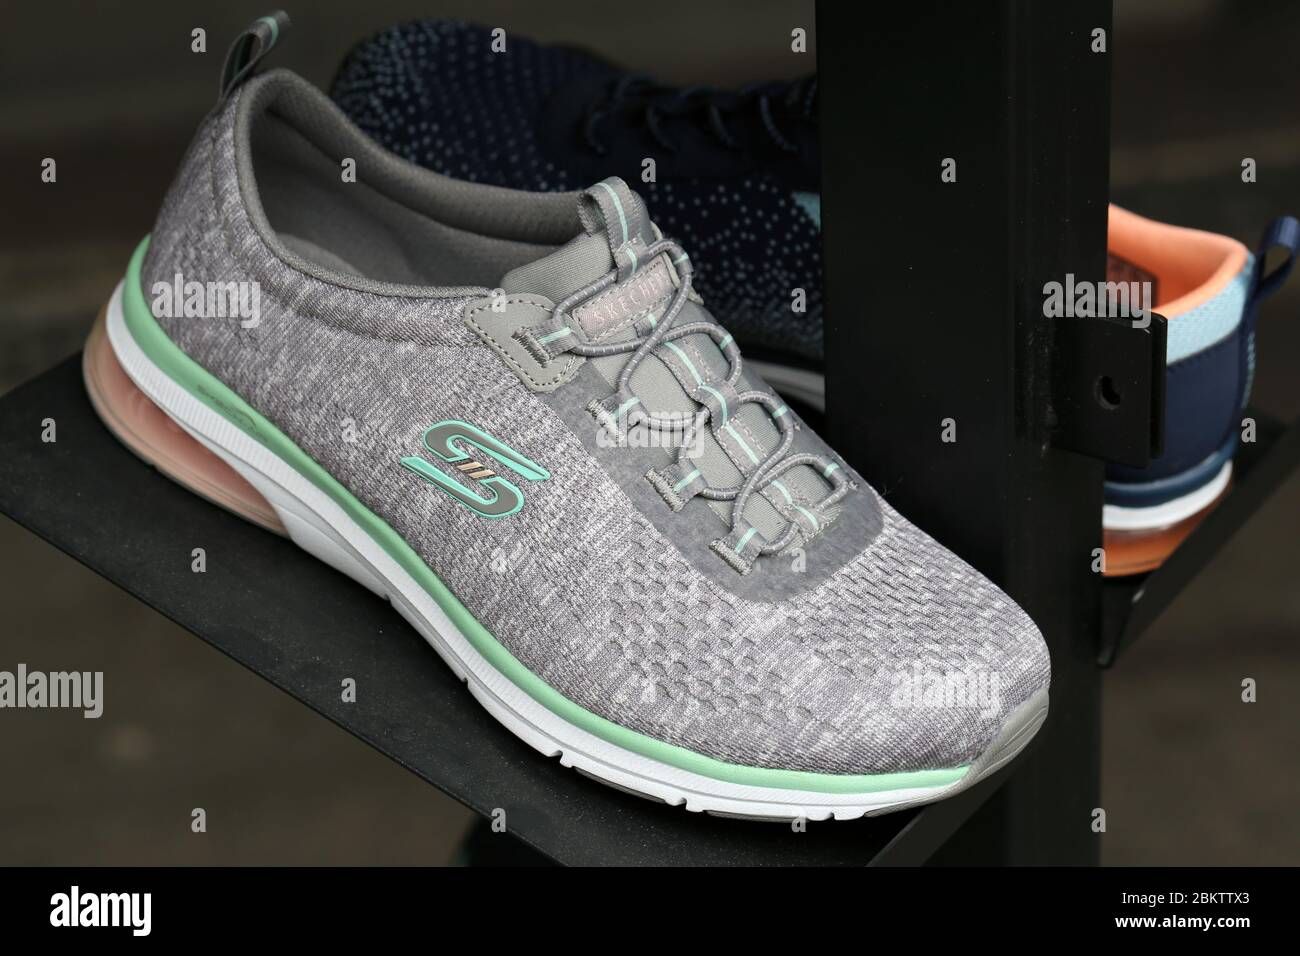 madre lotería incondicional  Skechers Shoes High Resolution Stock Photography and Images - Alamy